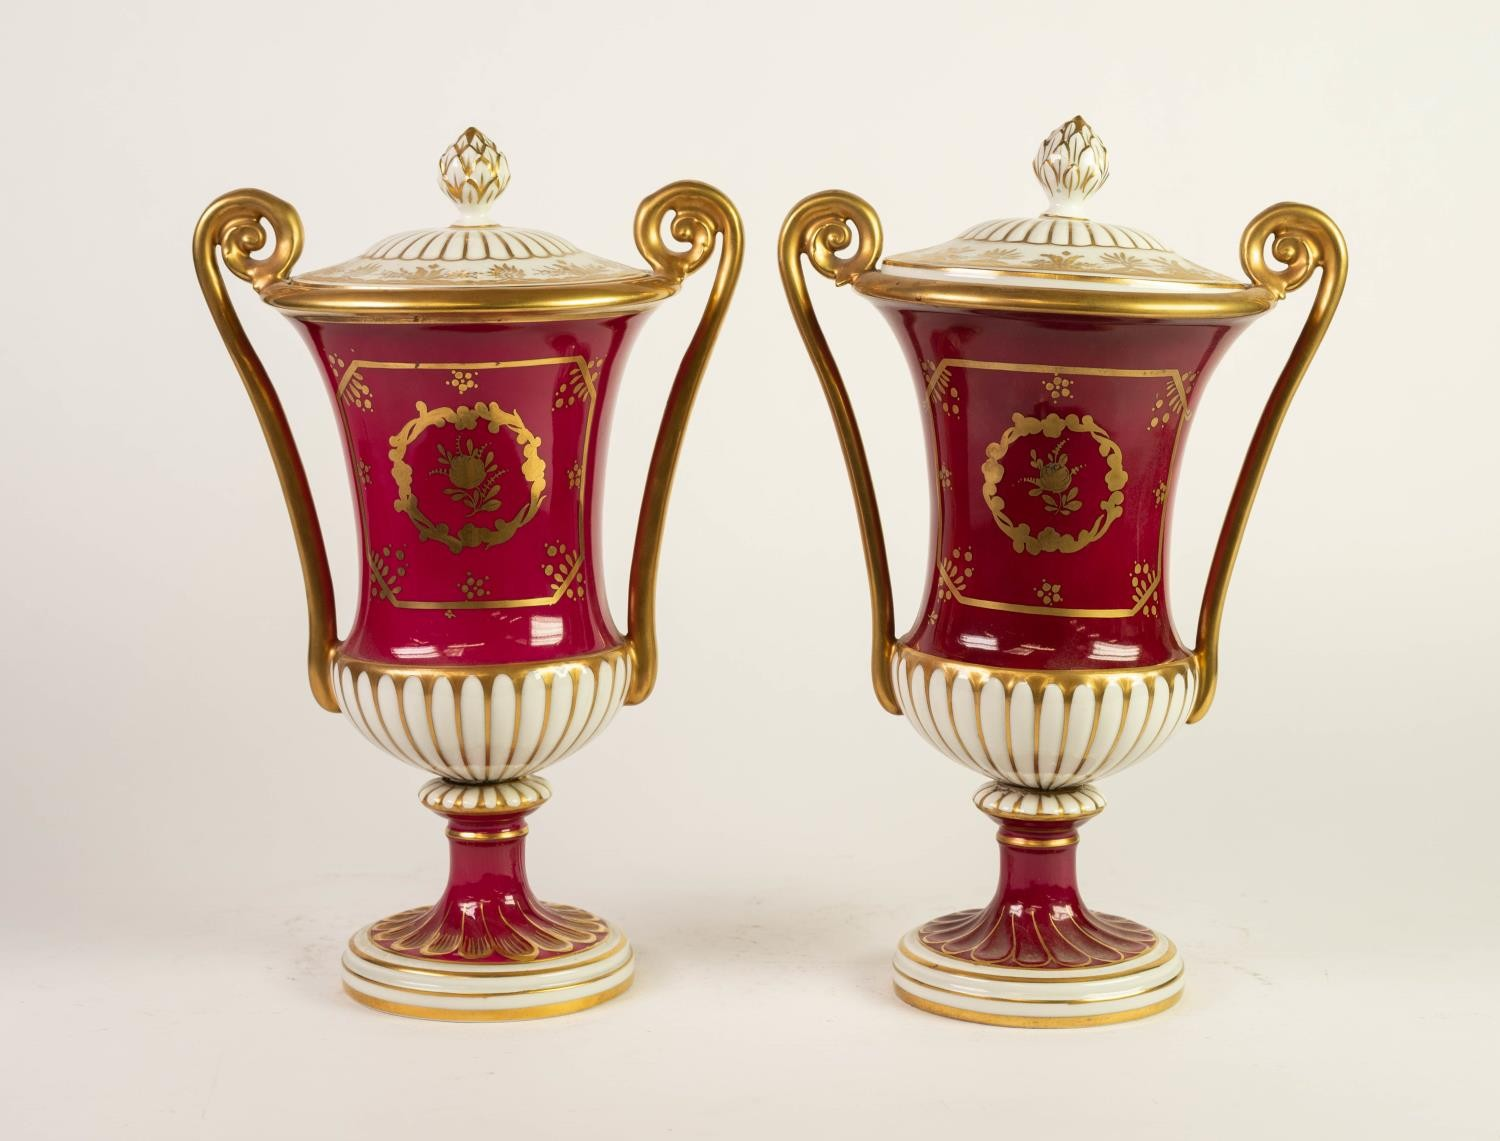 PAIR OF 20th CENTURY 'ORIGINAL DRESDEN' PORCELAIN TWO HANDLED CAMPANA SHAPE PEDESTAL VASES AND LOW - Image 2 of 3